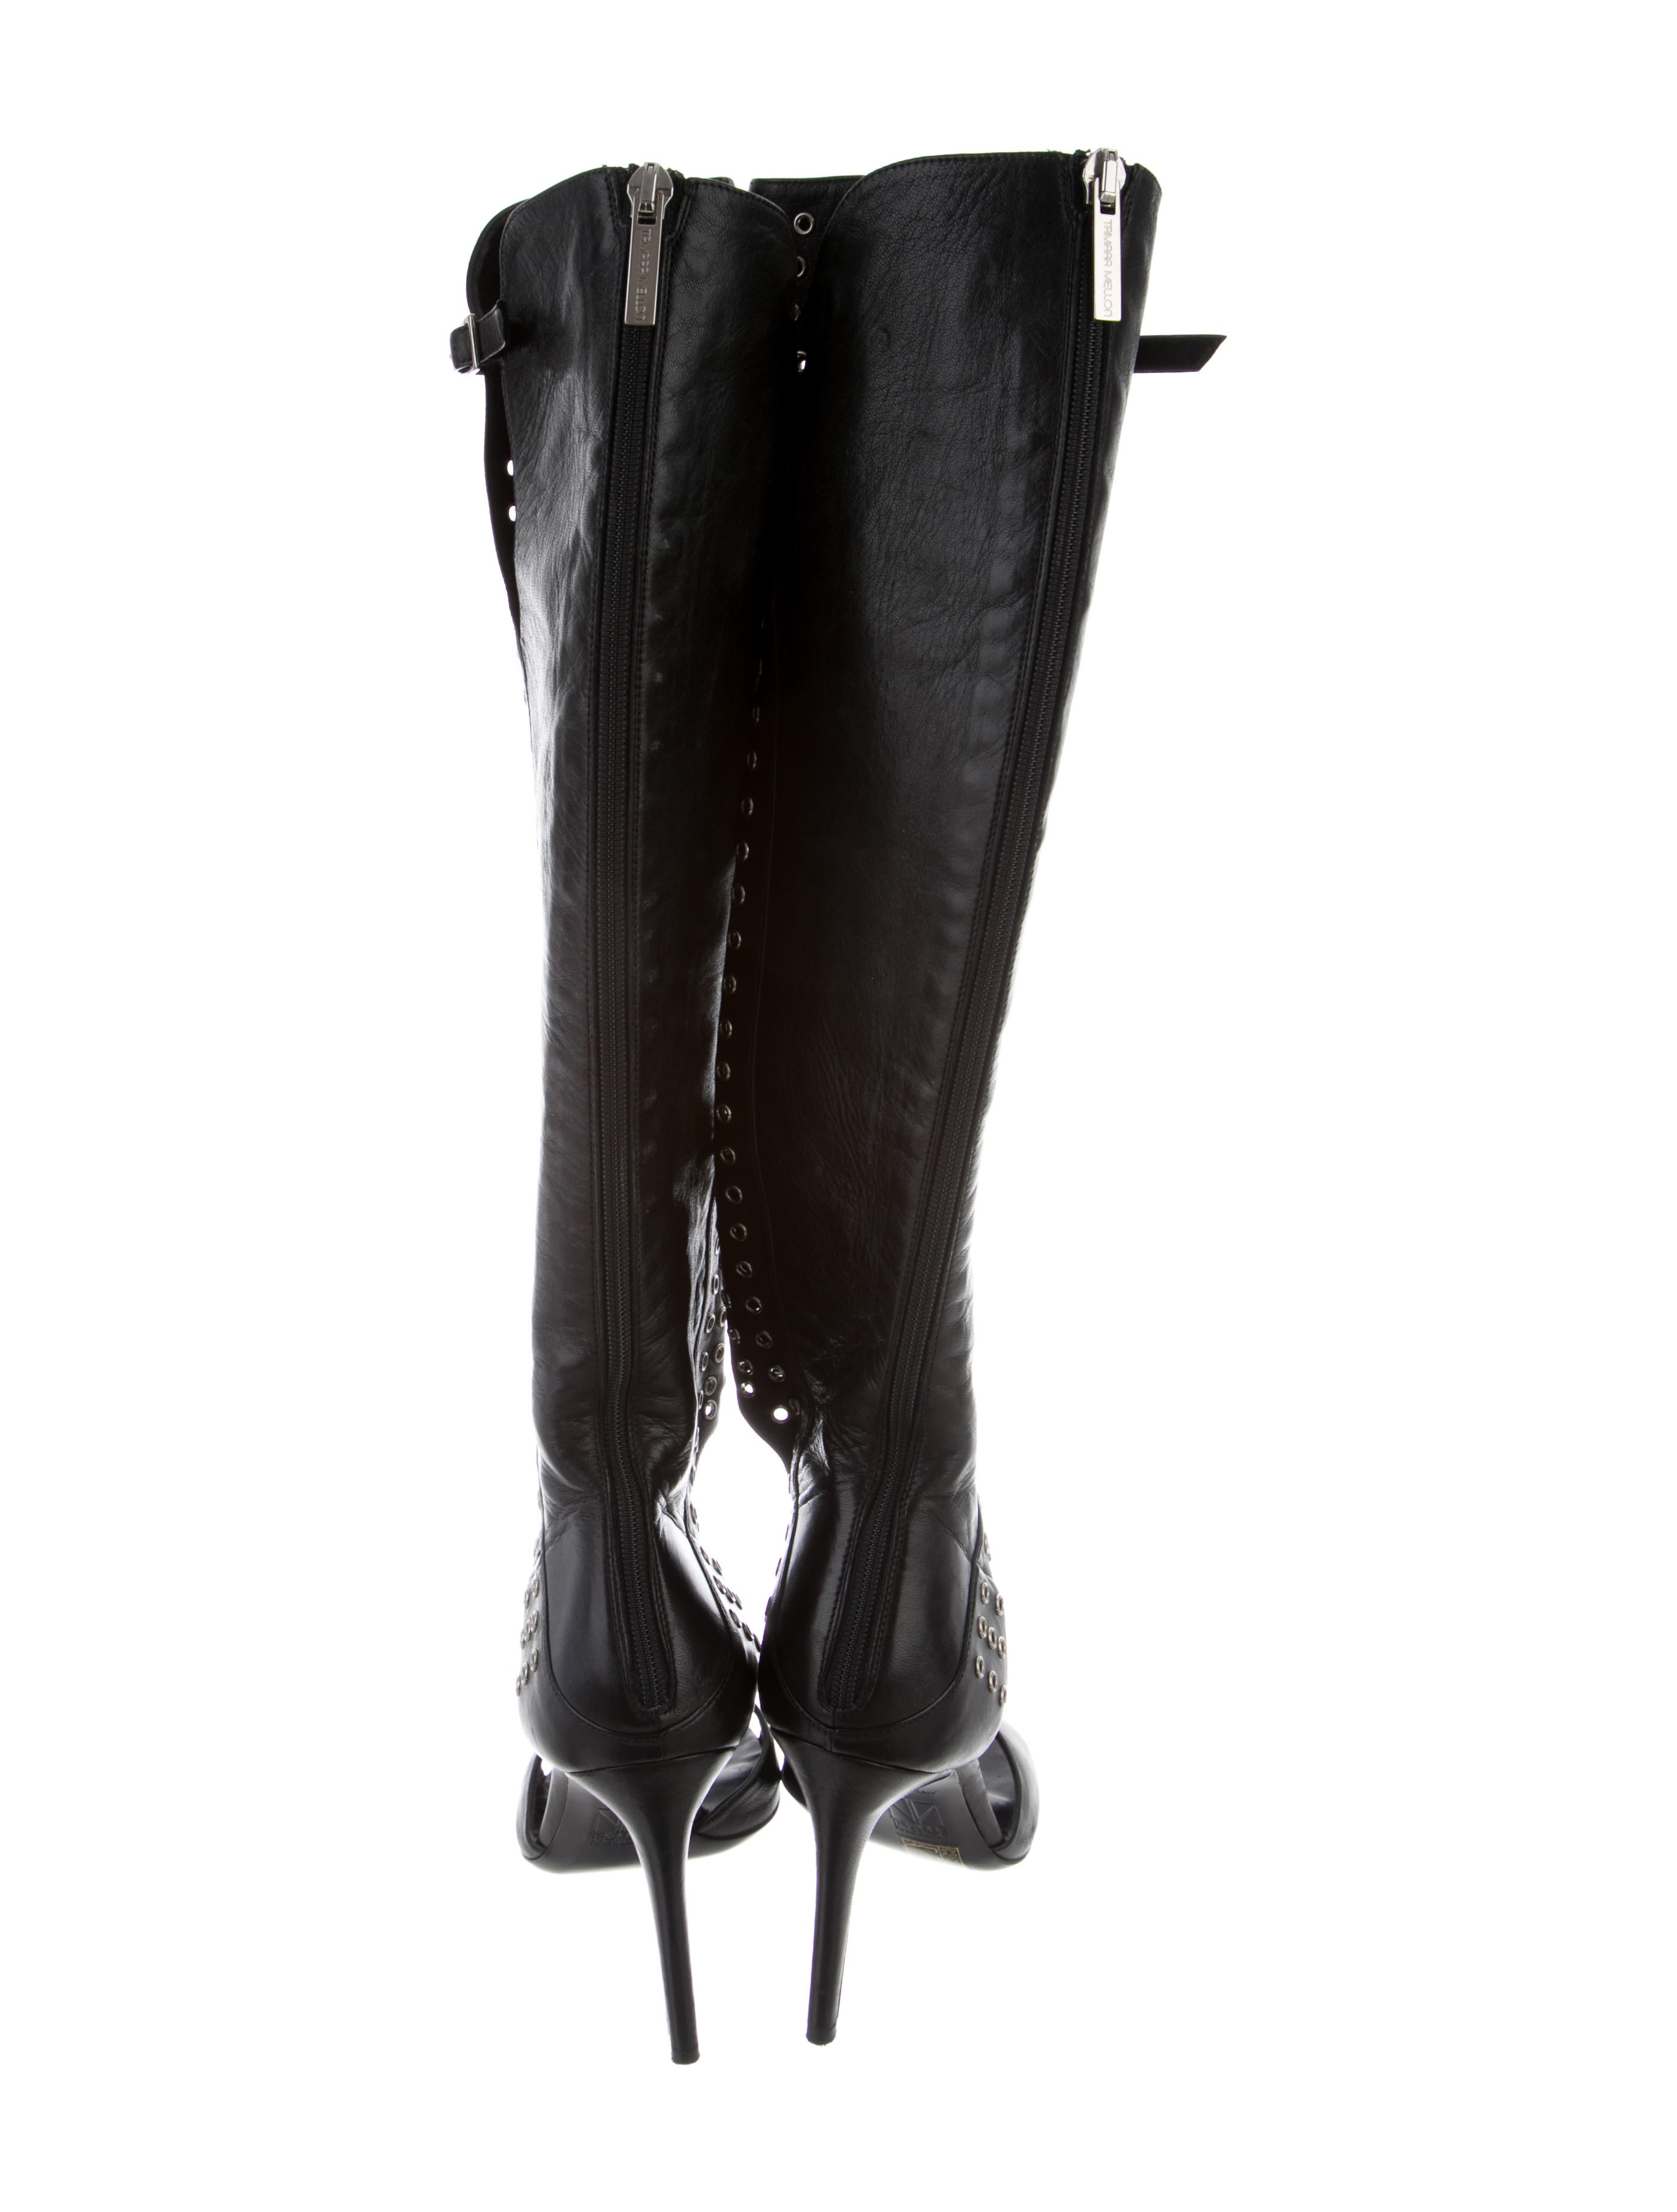 Tamara Mellon Grommet-Embellished Knee-High Sandals very cheap sale online marketable for sale real online high quality sale online qcbH4